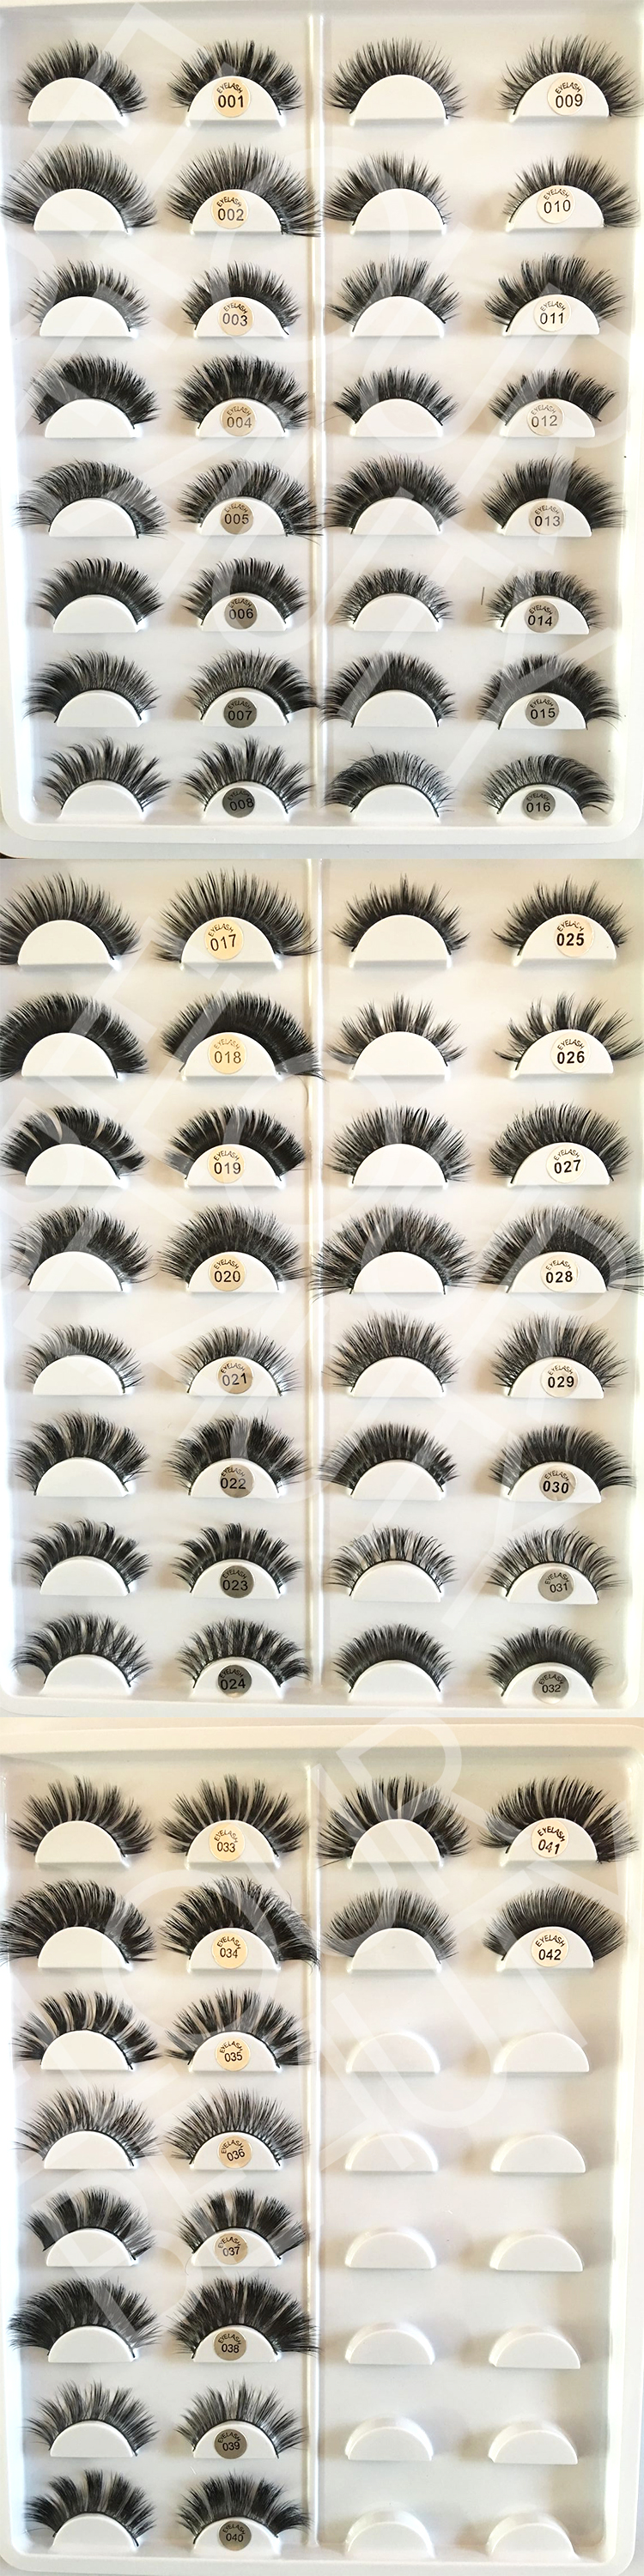 hundreds styles of mink eyelashes manufacturer.jpg